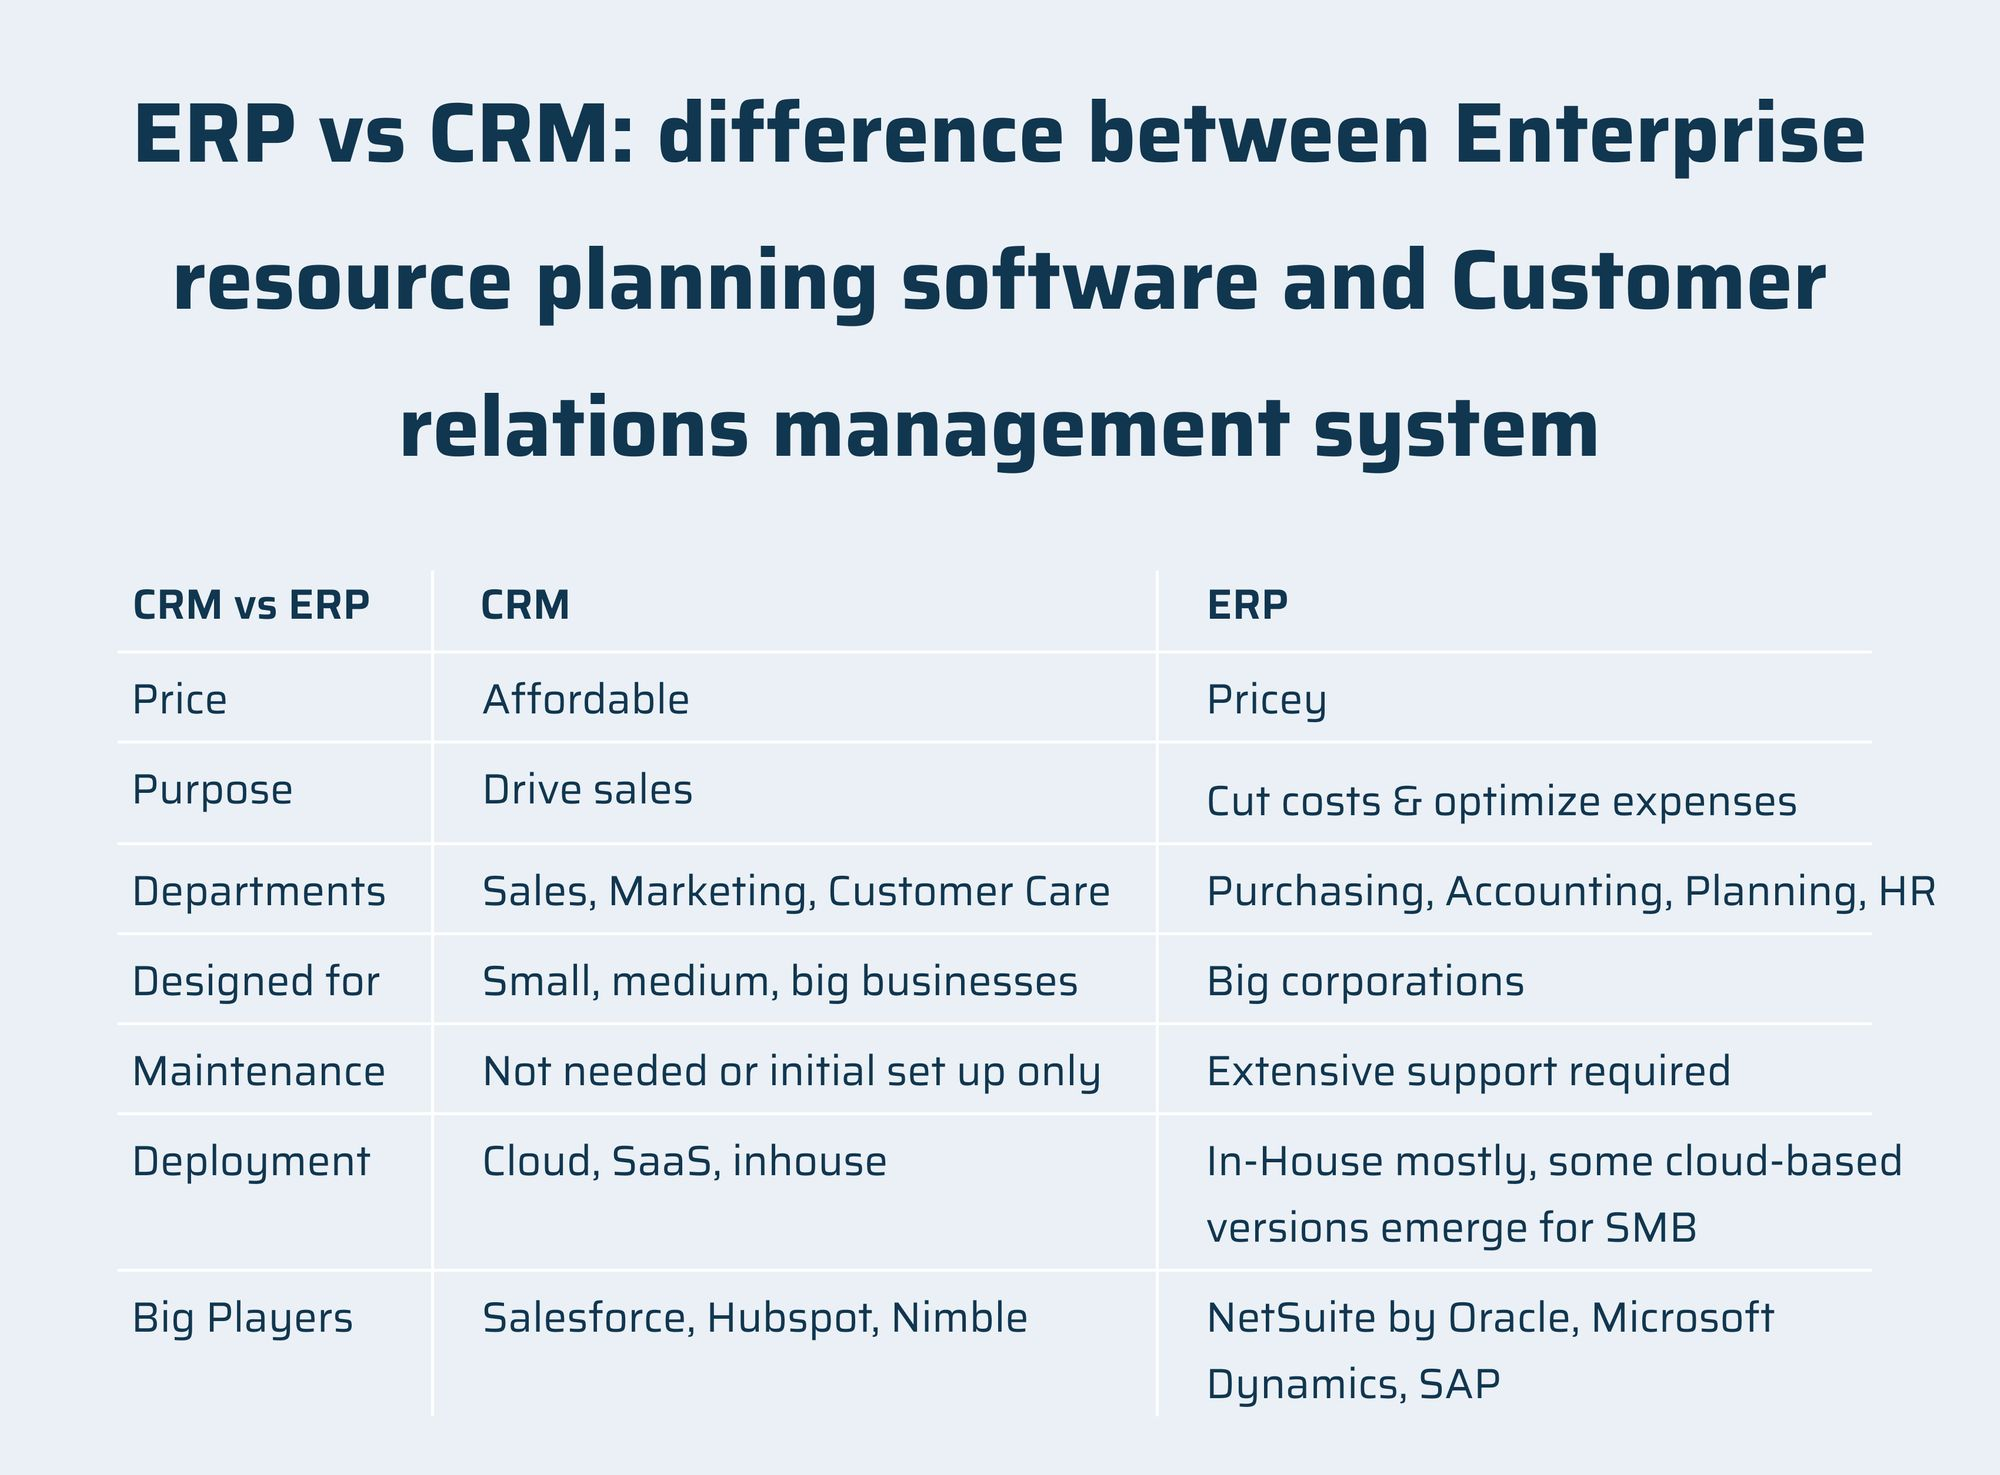 ERP vs CRM: difference between Enterprise resource planning software and Customer relations management system